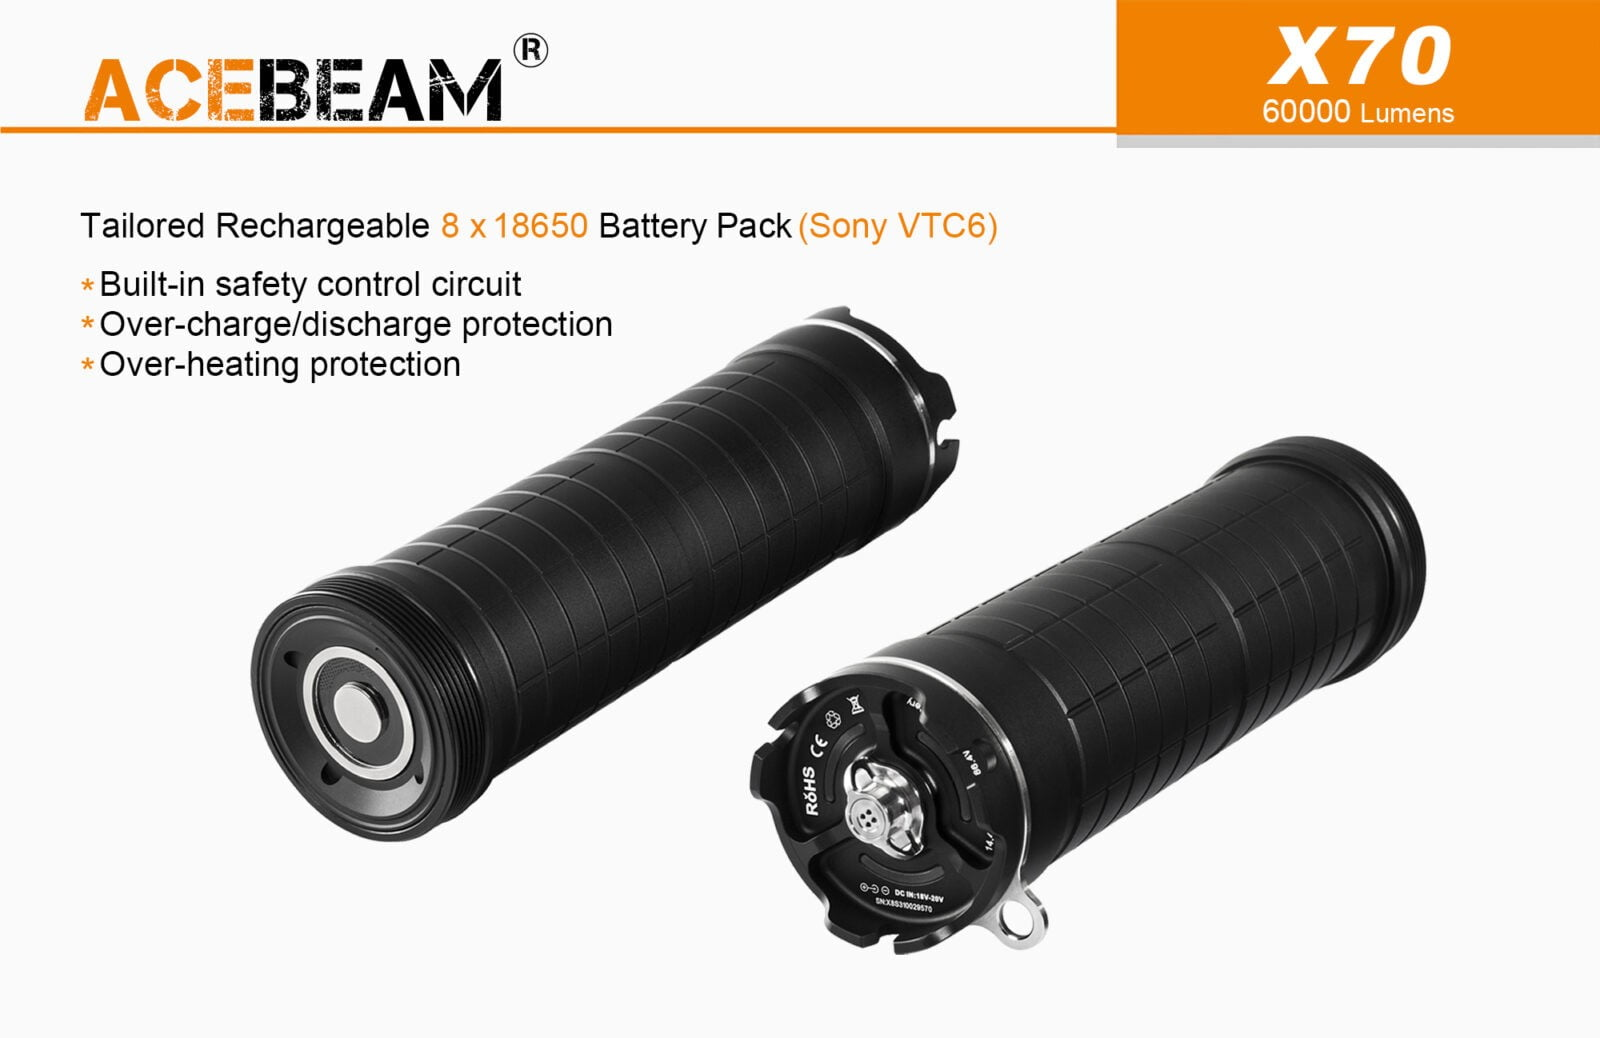 Acebeam X70 Flashlight battery pack